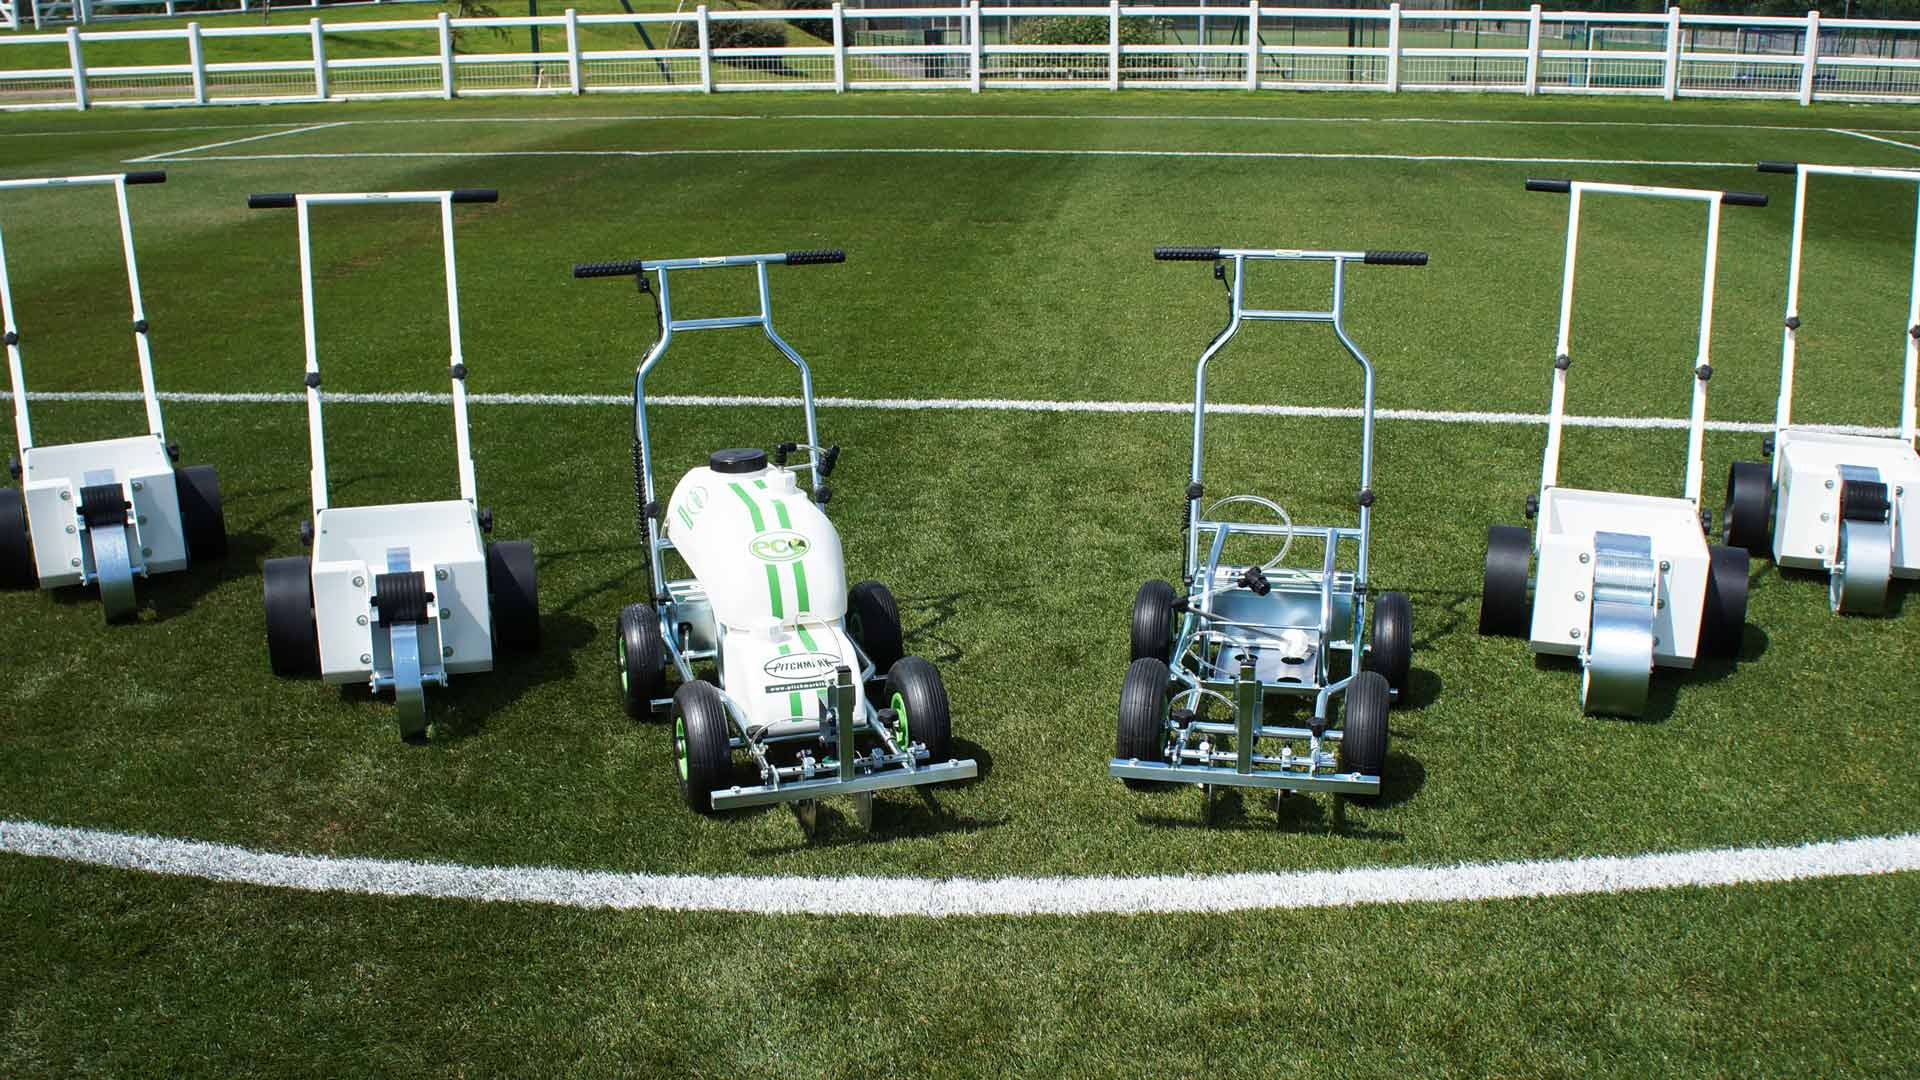 Photo of a range of white and metal line marking machines laid out on a grass sports pitch.